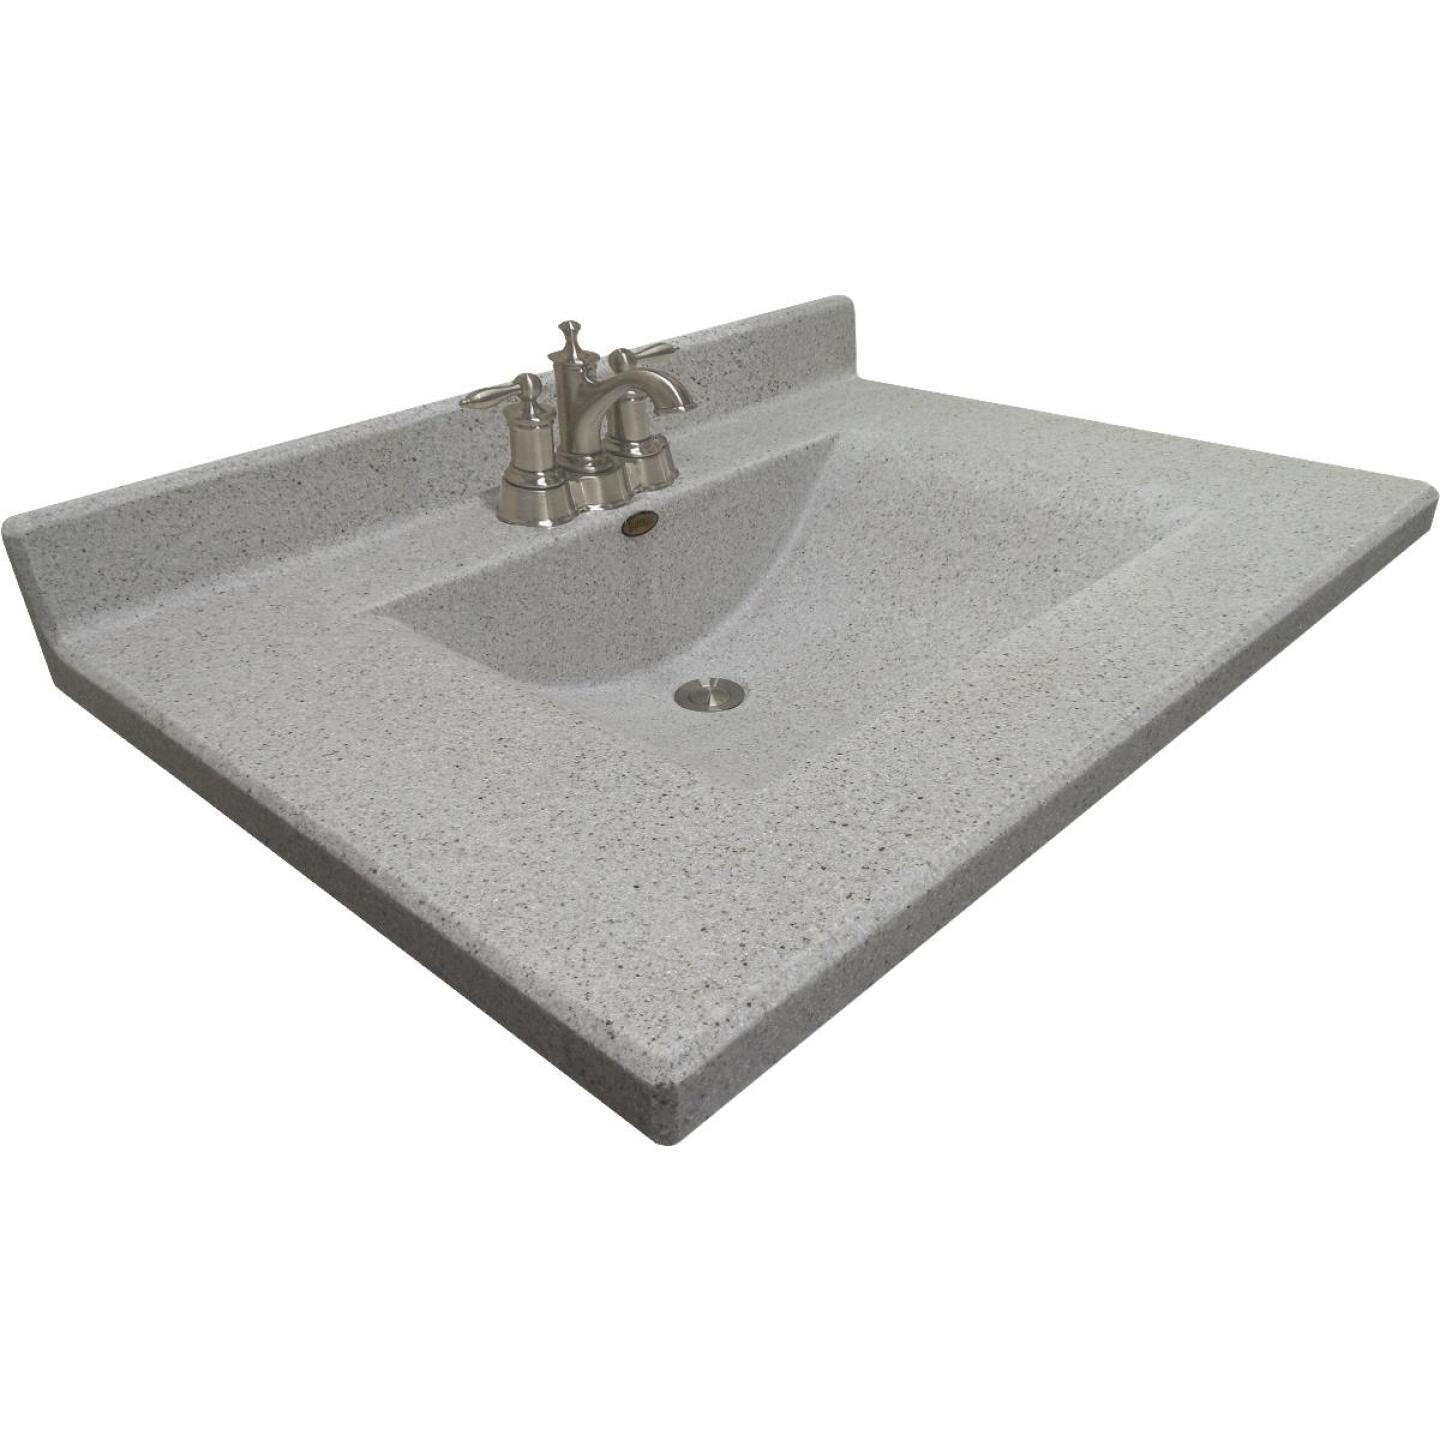 Imperial Marble Ventana 31 In. W x 22 In. D Satin Stone Cultured Marble Vanity Top with Wave Bowl Image 3